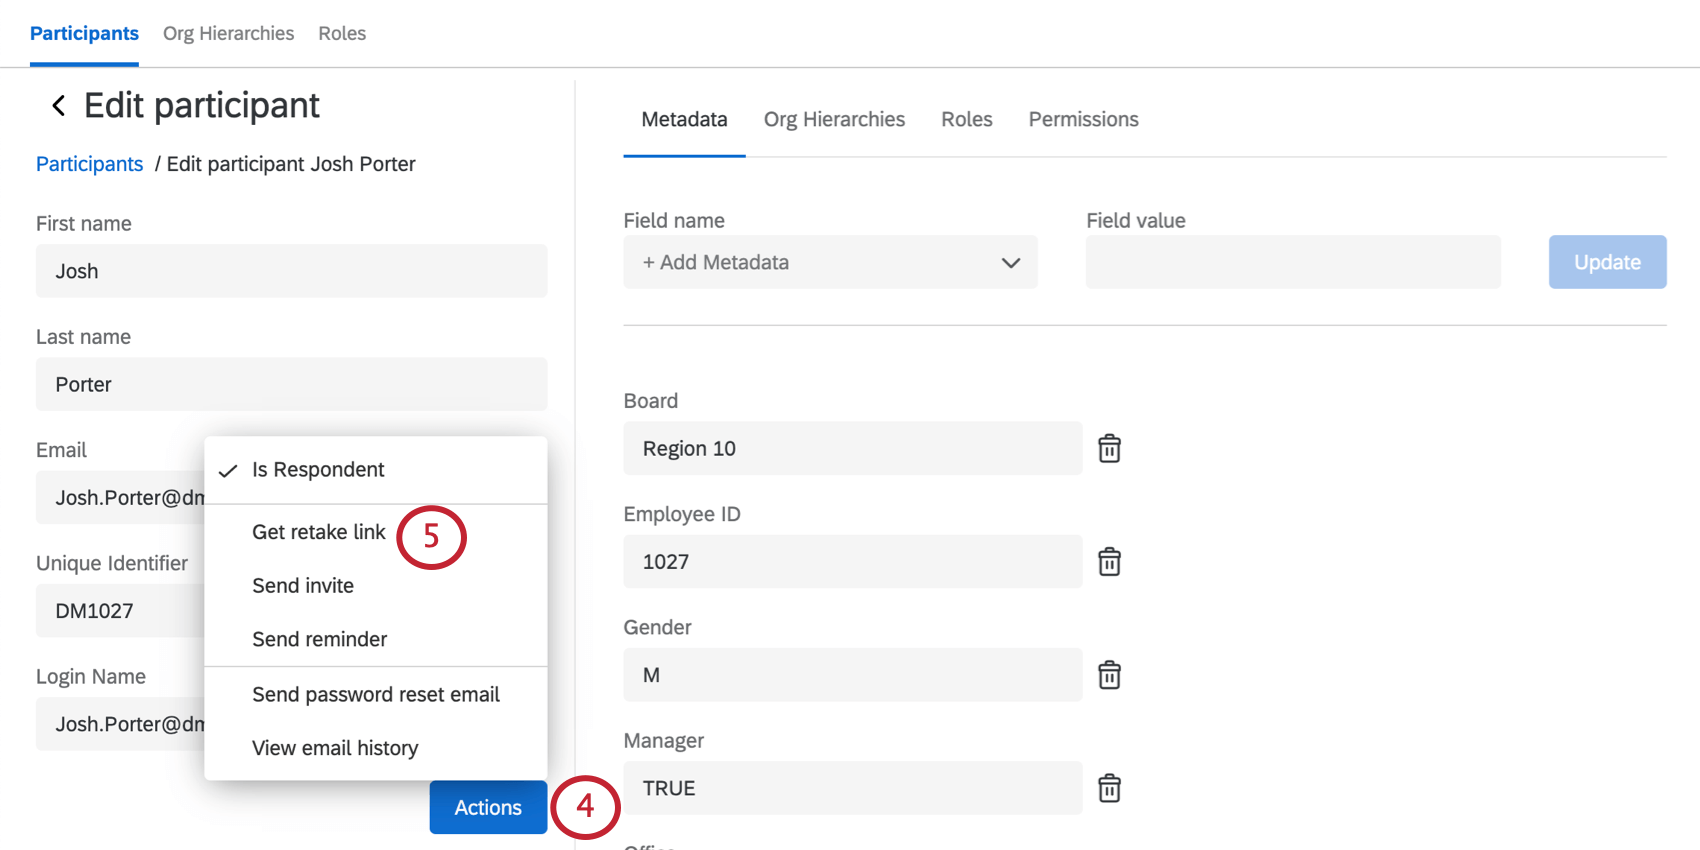 The Participation Information window is open with the Actions dropdown expanded